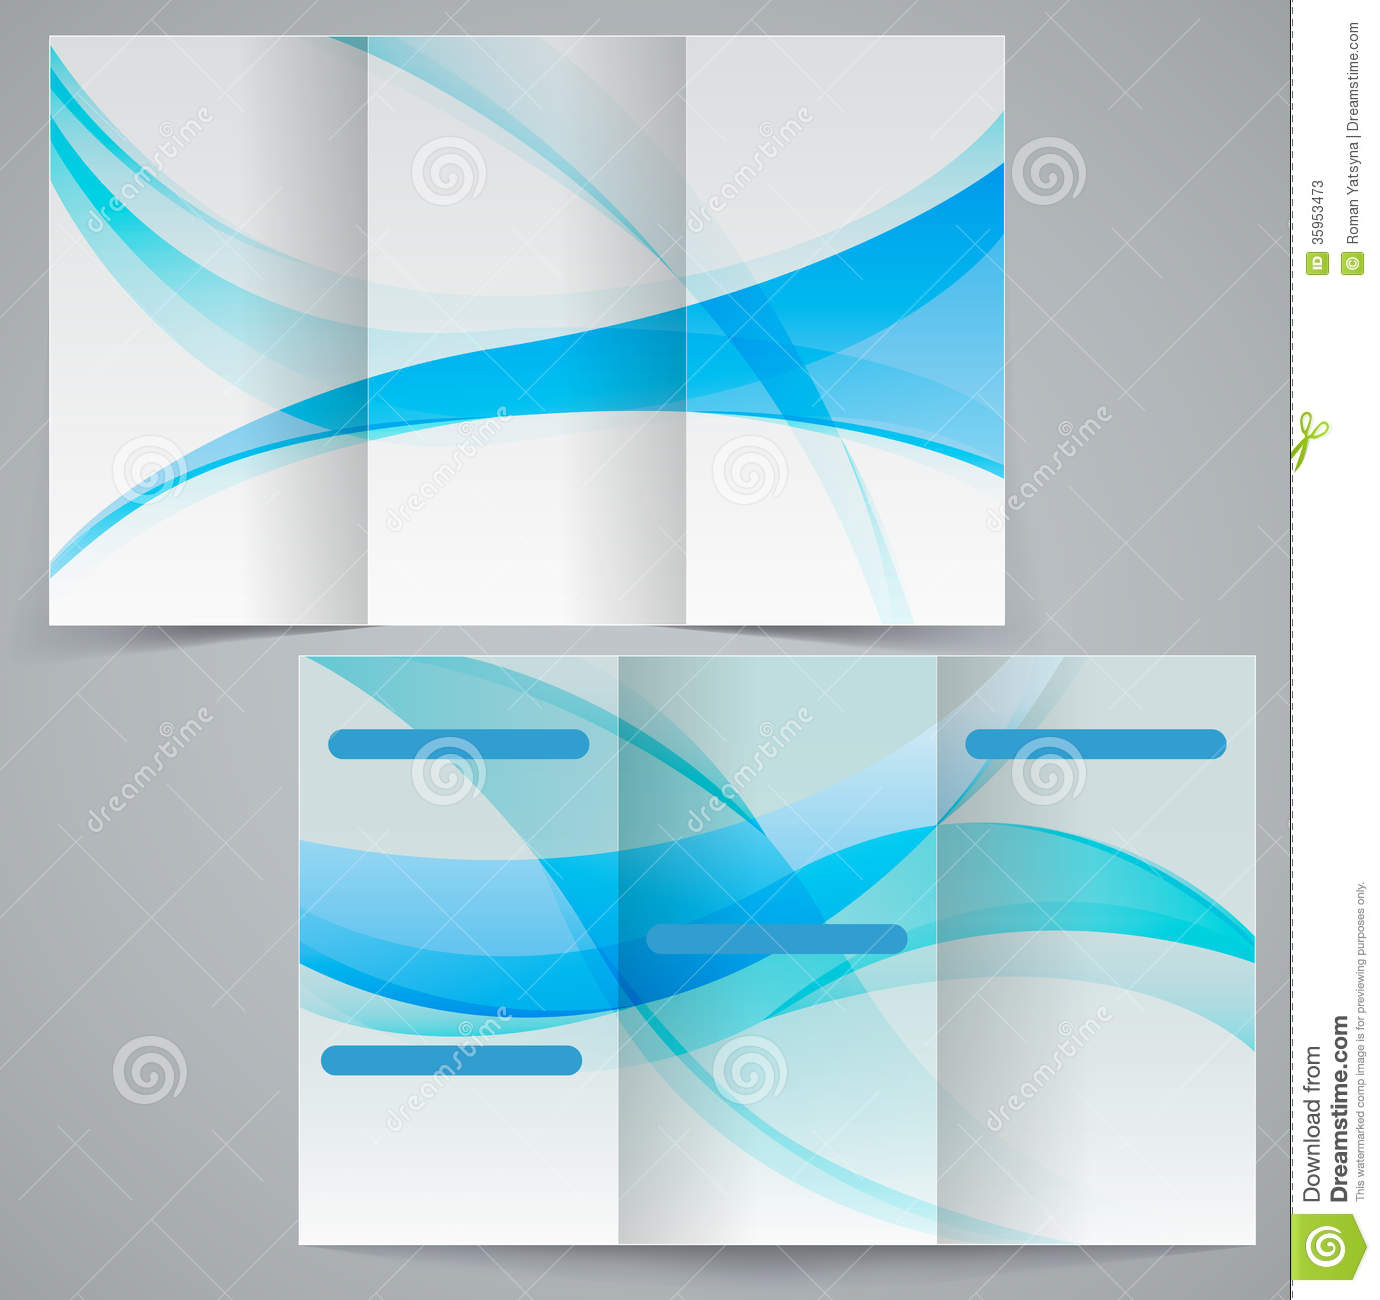 Tri fold business brochure template vector blue d stock for Brochure template online